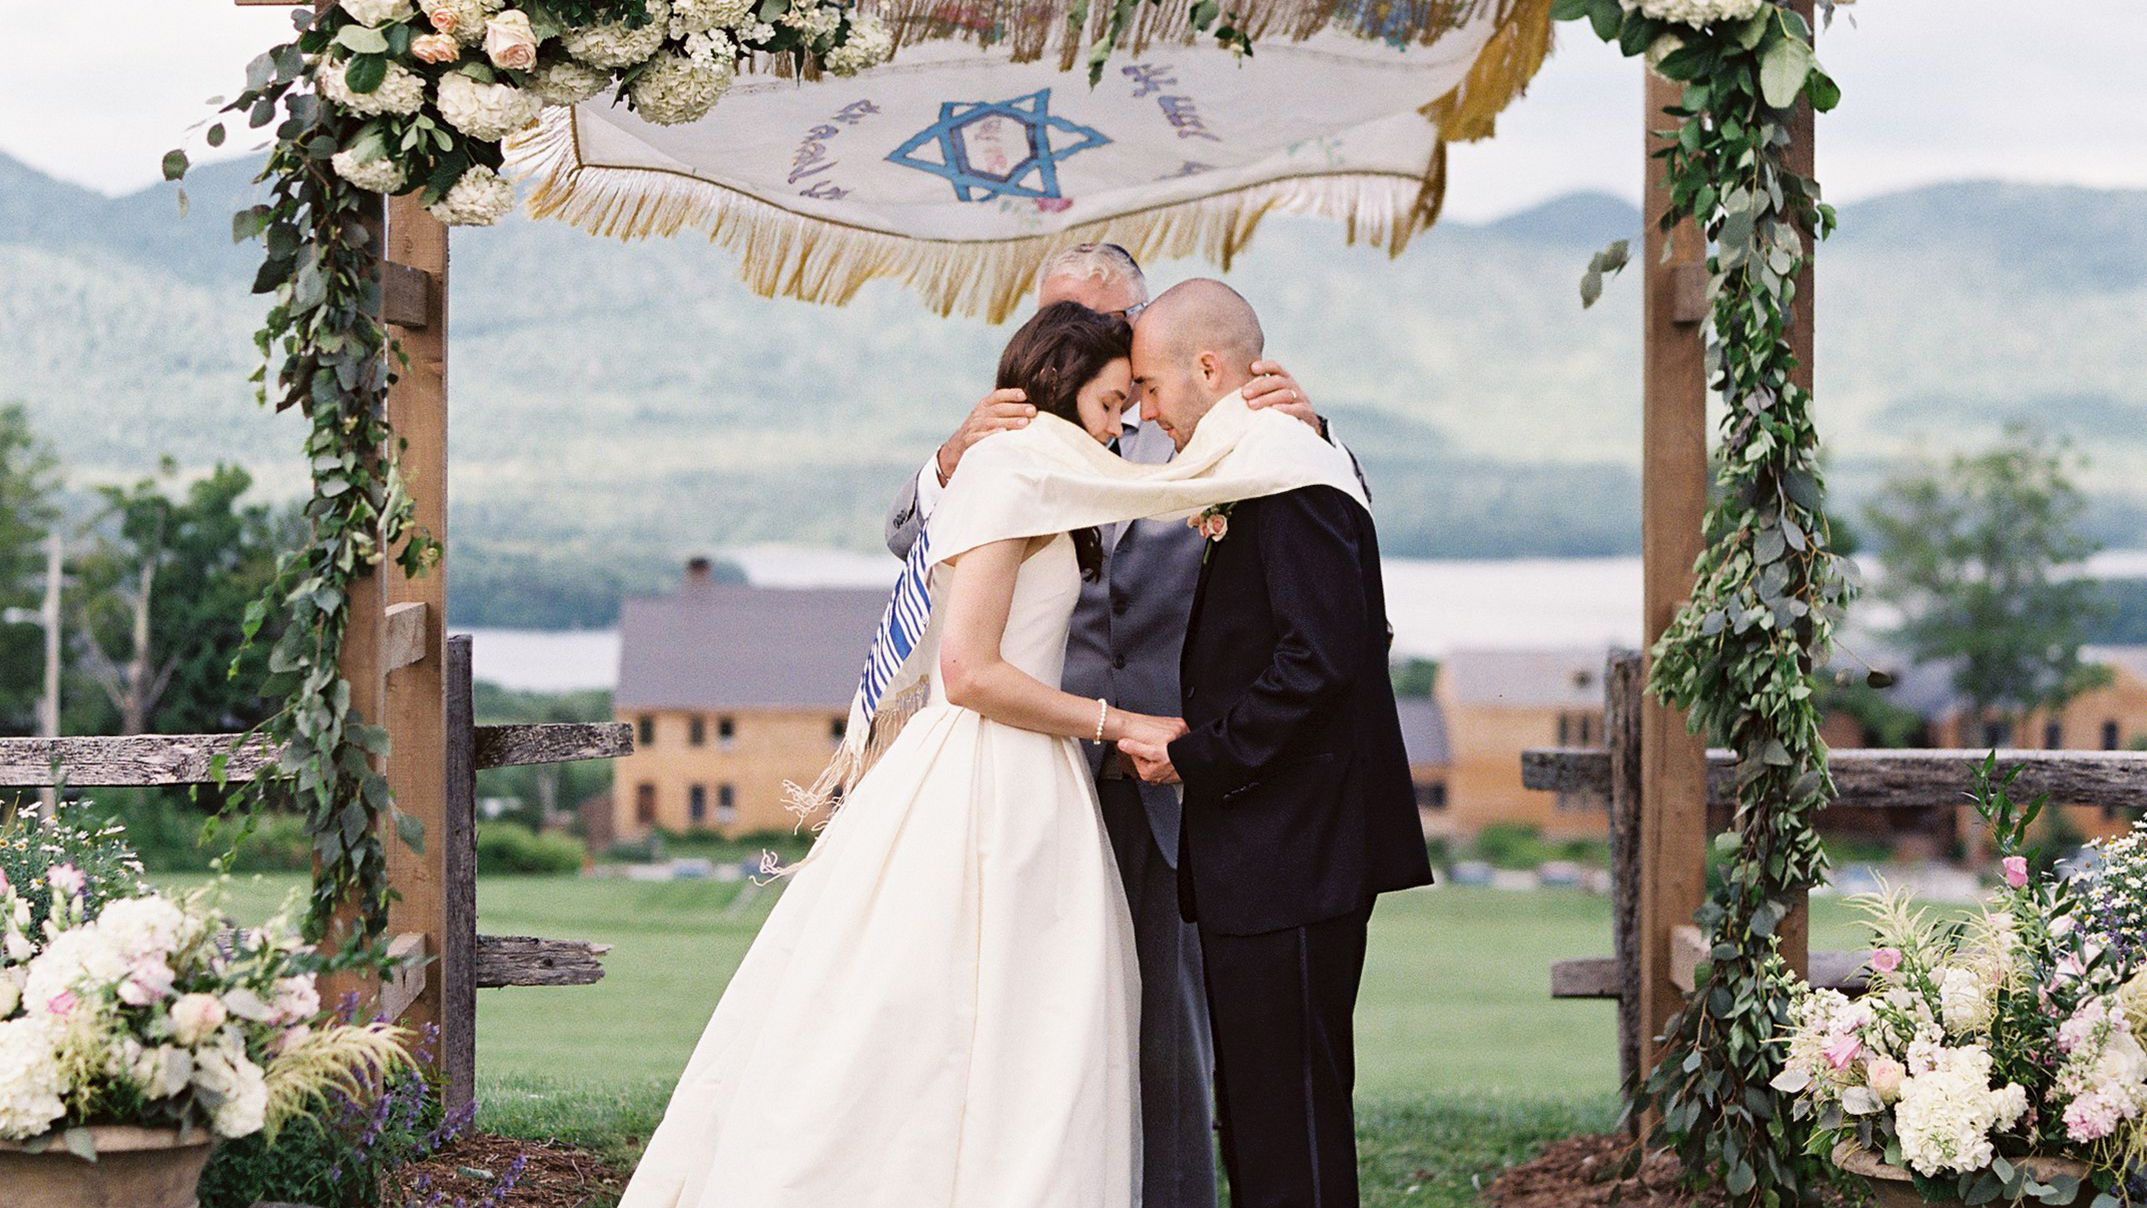 13 Jewish Wedding Traditions And Rituals You Need To Know,African Wedding Guest Dress Styles